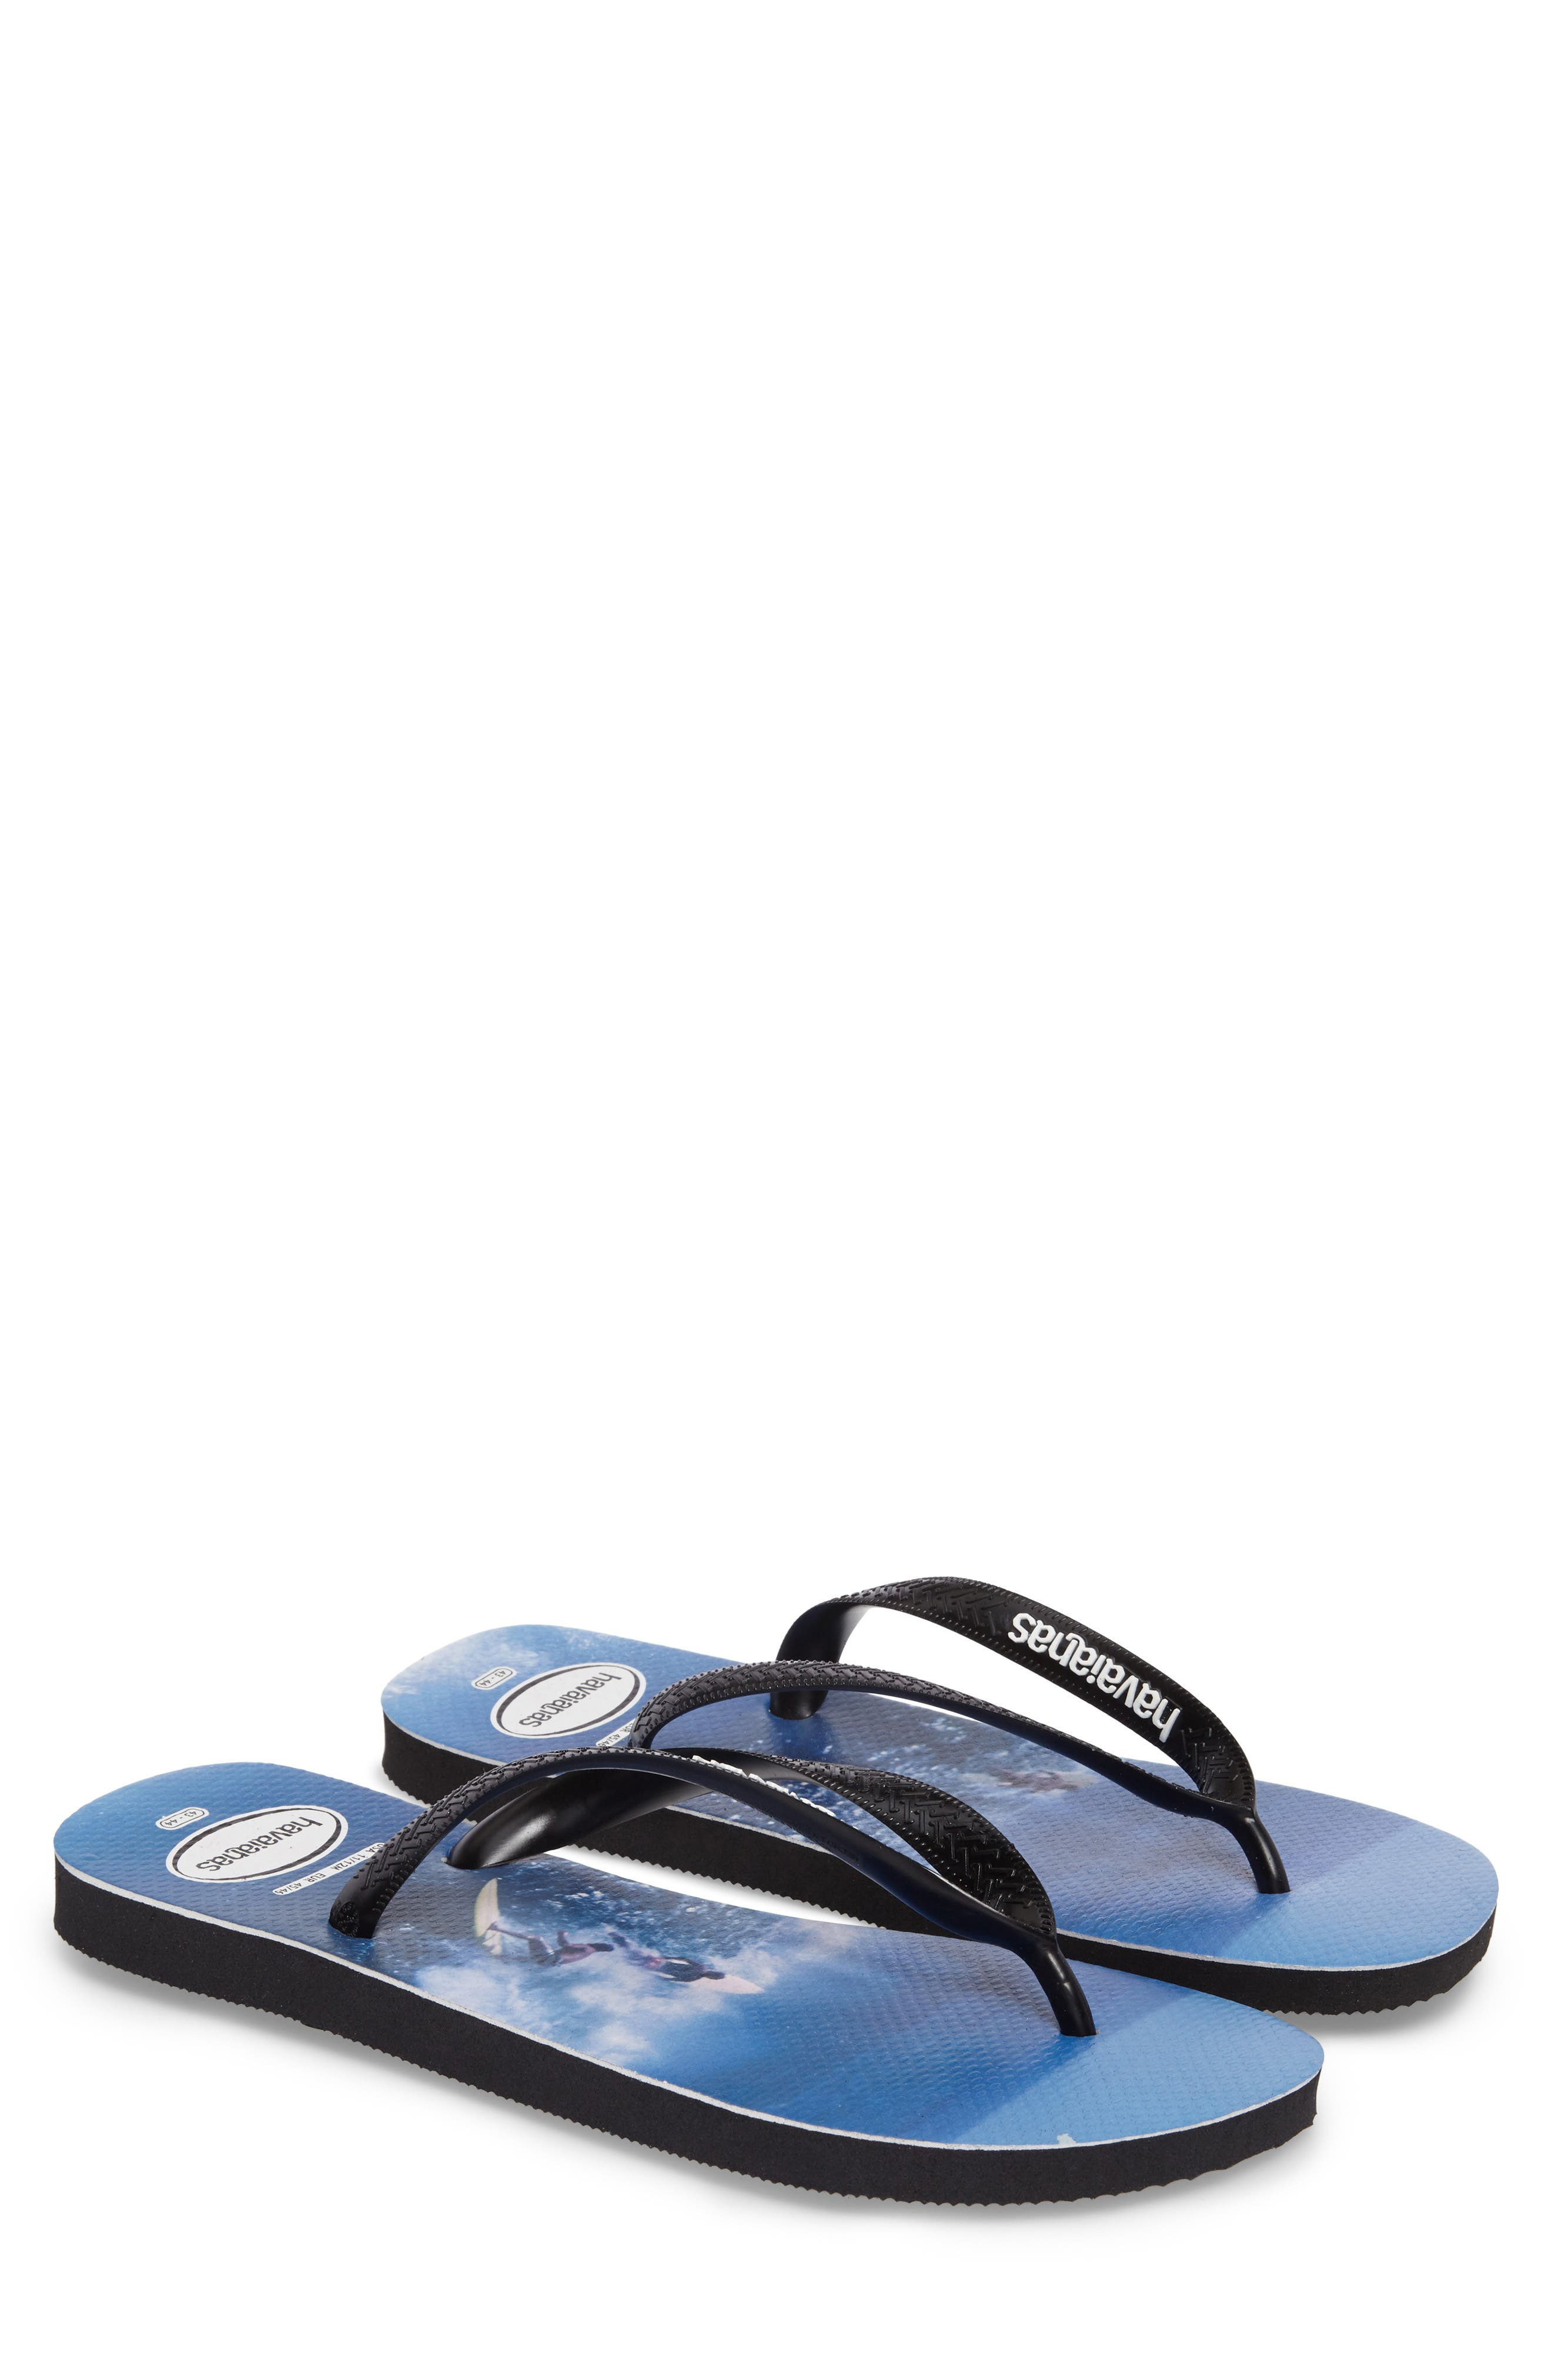 Main Image - Havaianas Top Photo Print Flip Flop (Men)